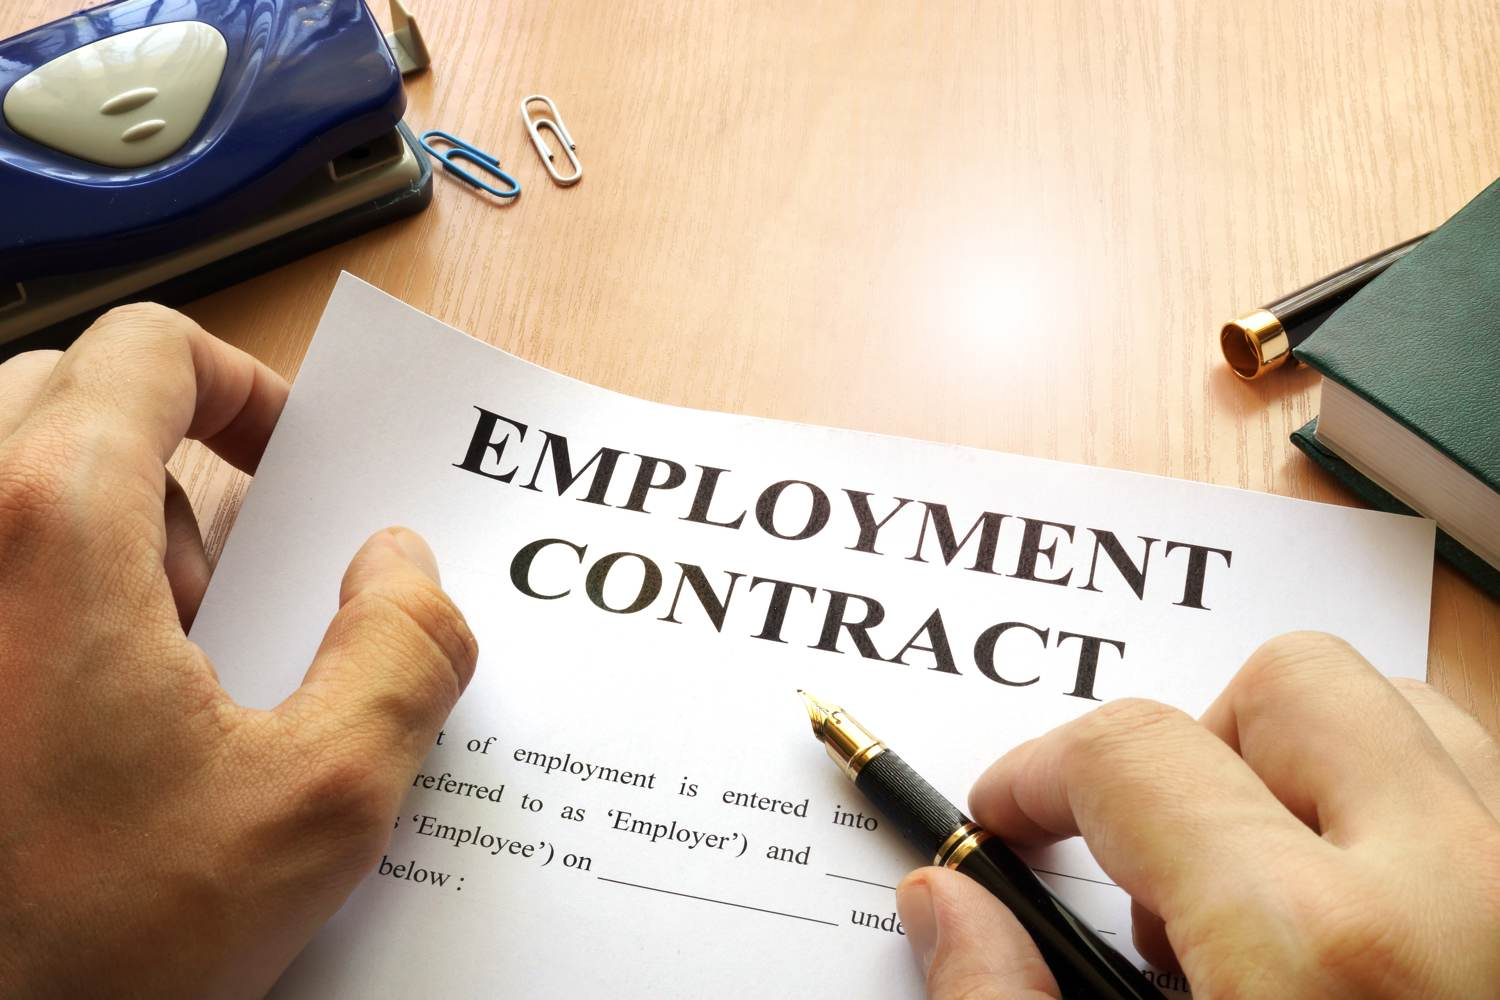 shu-Employment law-Contract-653550127-designer491-1500x1000